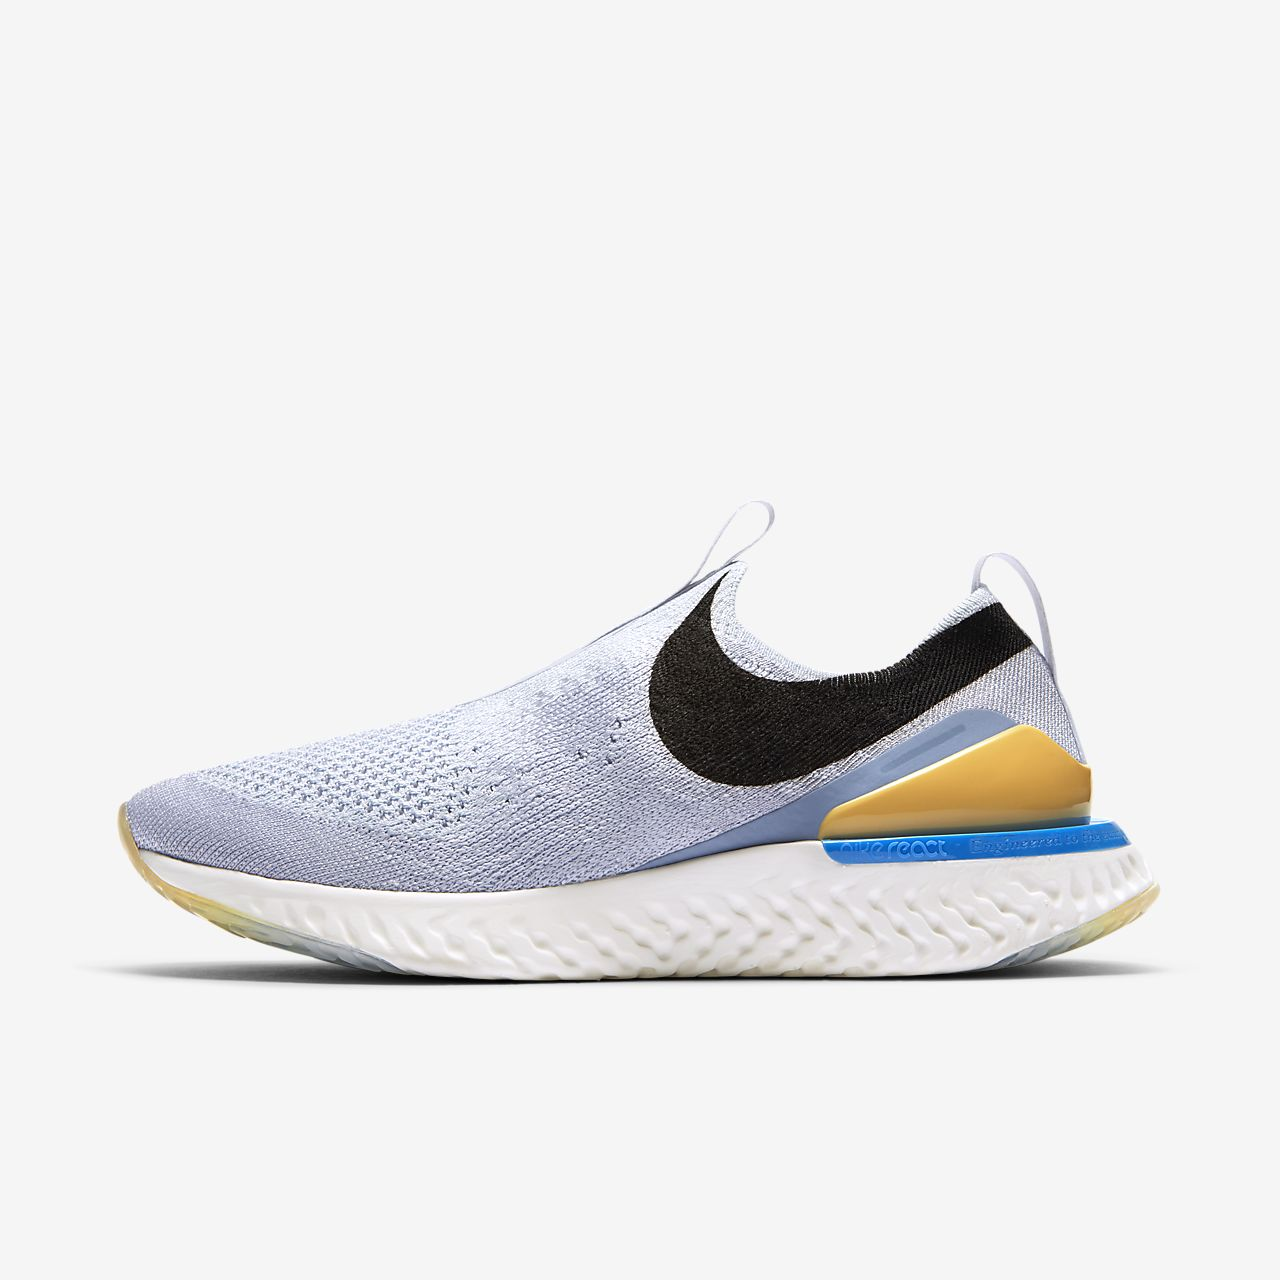 Damskie buty do biegania Nike Epic Phantom React